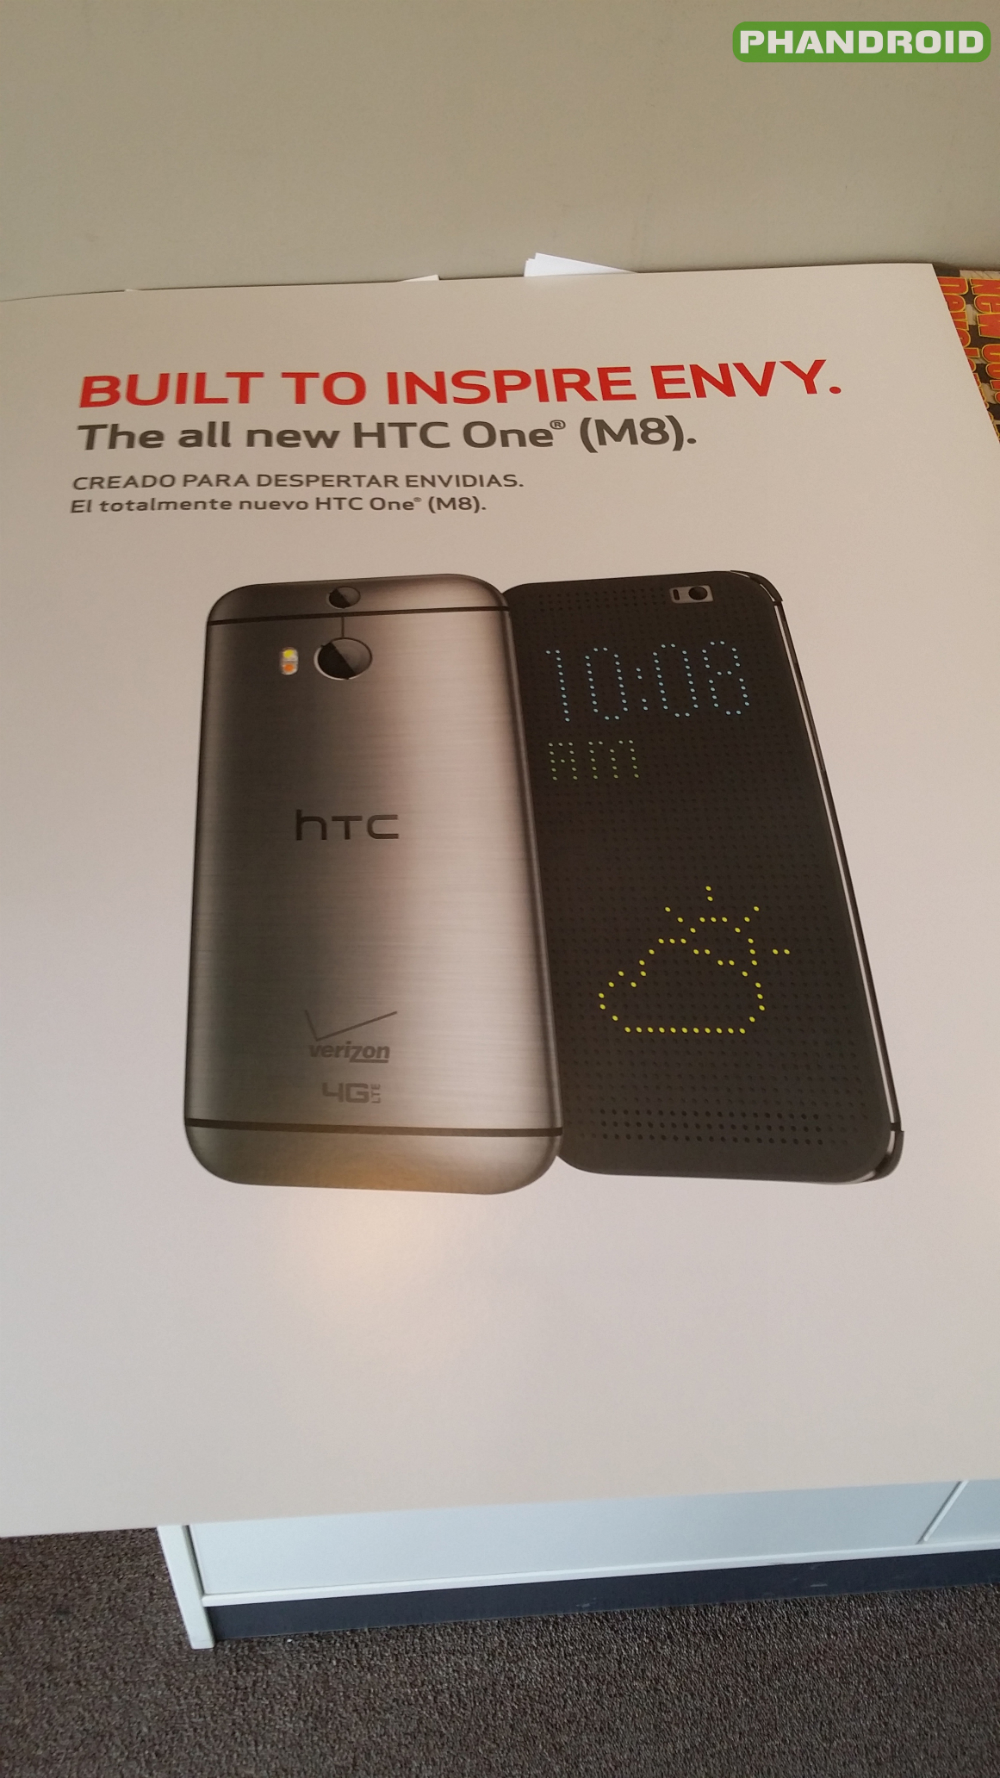 htc-one-m8-2014-verizon-launch-2